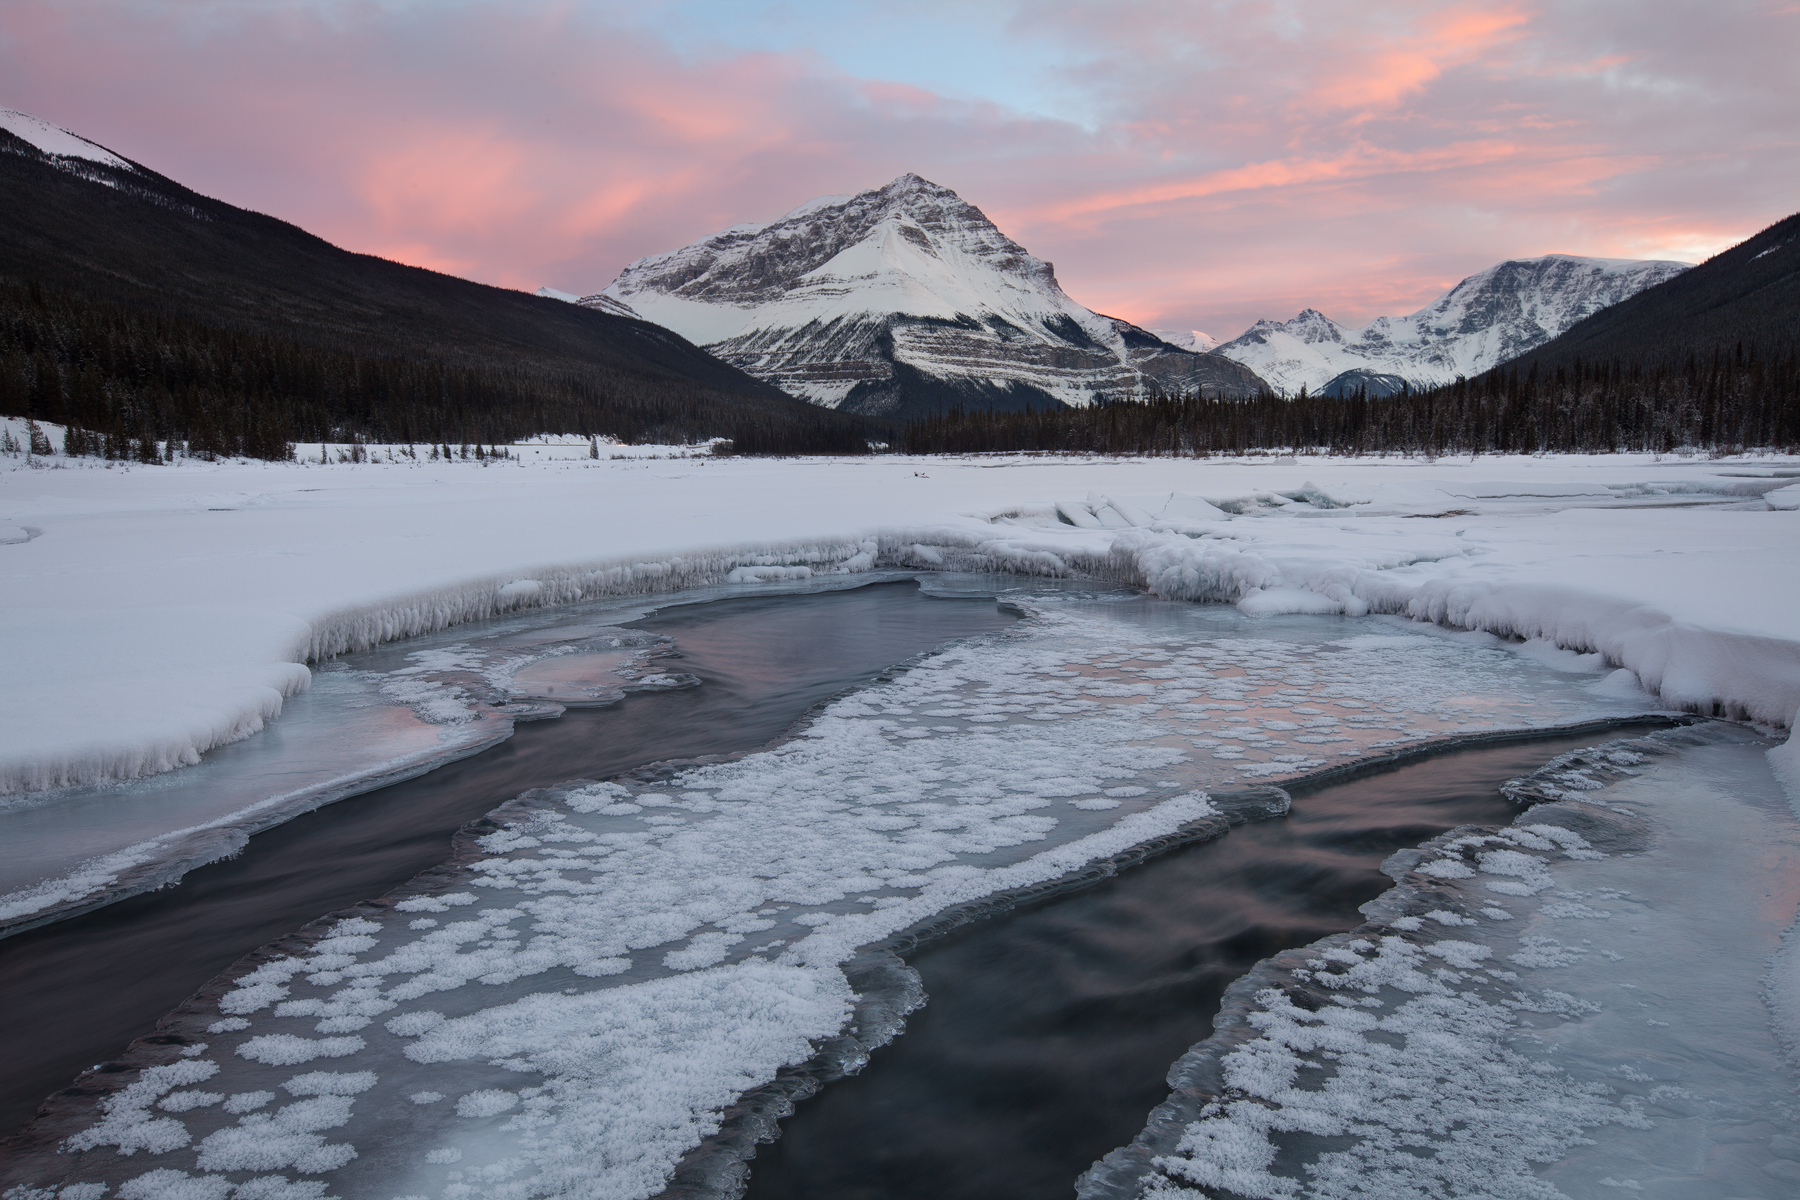 Sunset along the Icefields Parkway in Jasper National Park, Canada.  Image ©Connor Stefanison